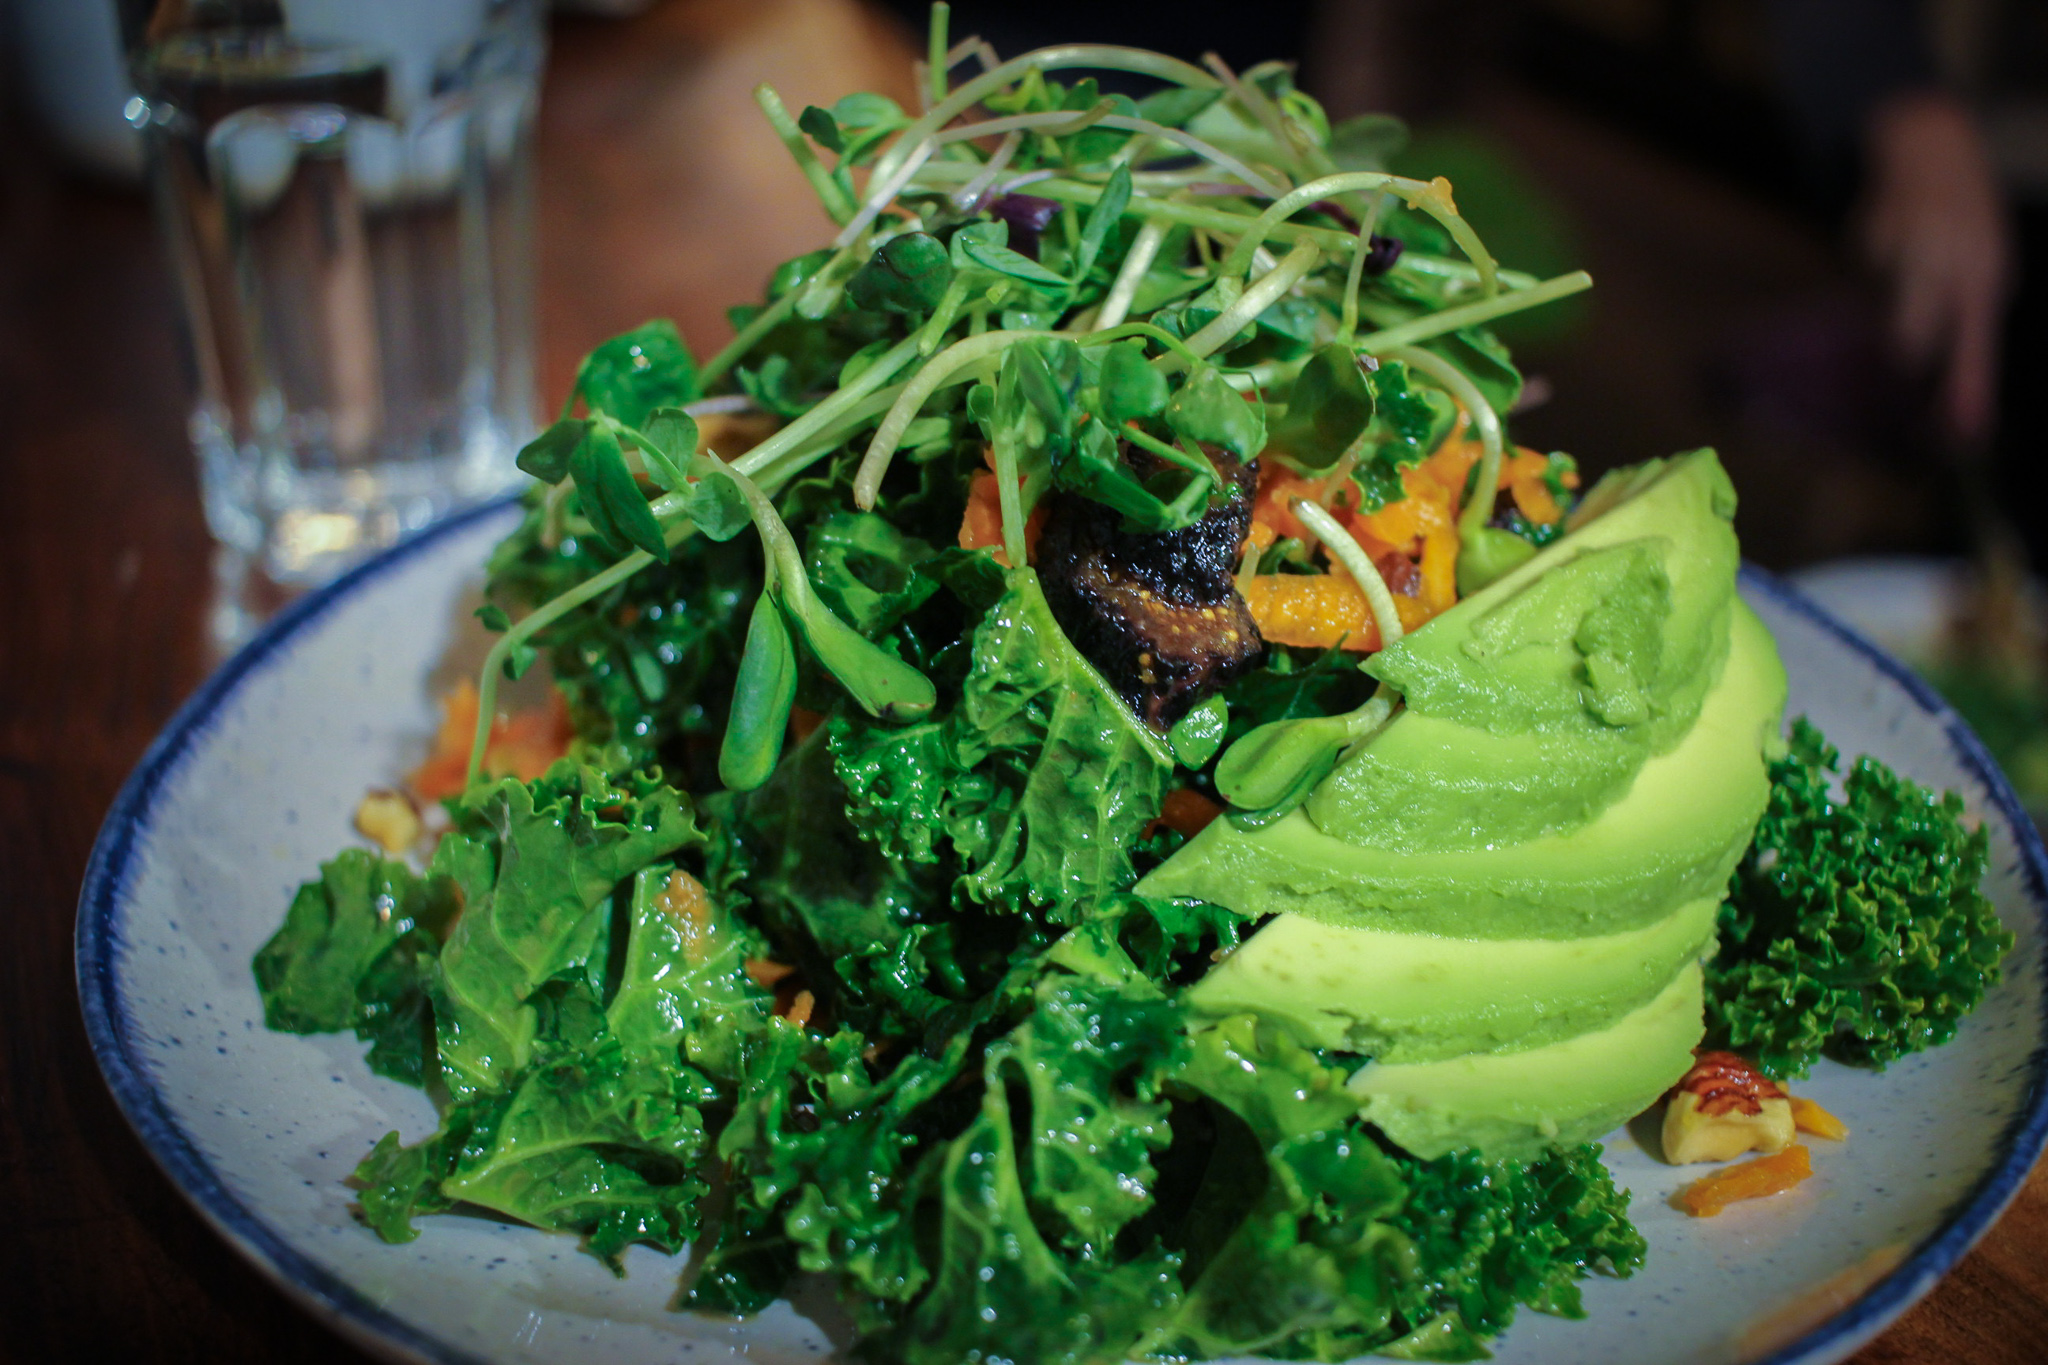 Citrus, hazelnut, and kale salad: kale, carrots, sprouts, orange slices, toasted hazelnuts, dried figs, avocado, and an apple cider vinaigrette.